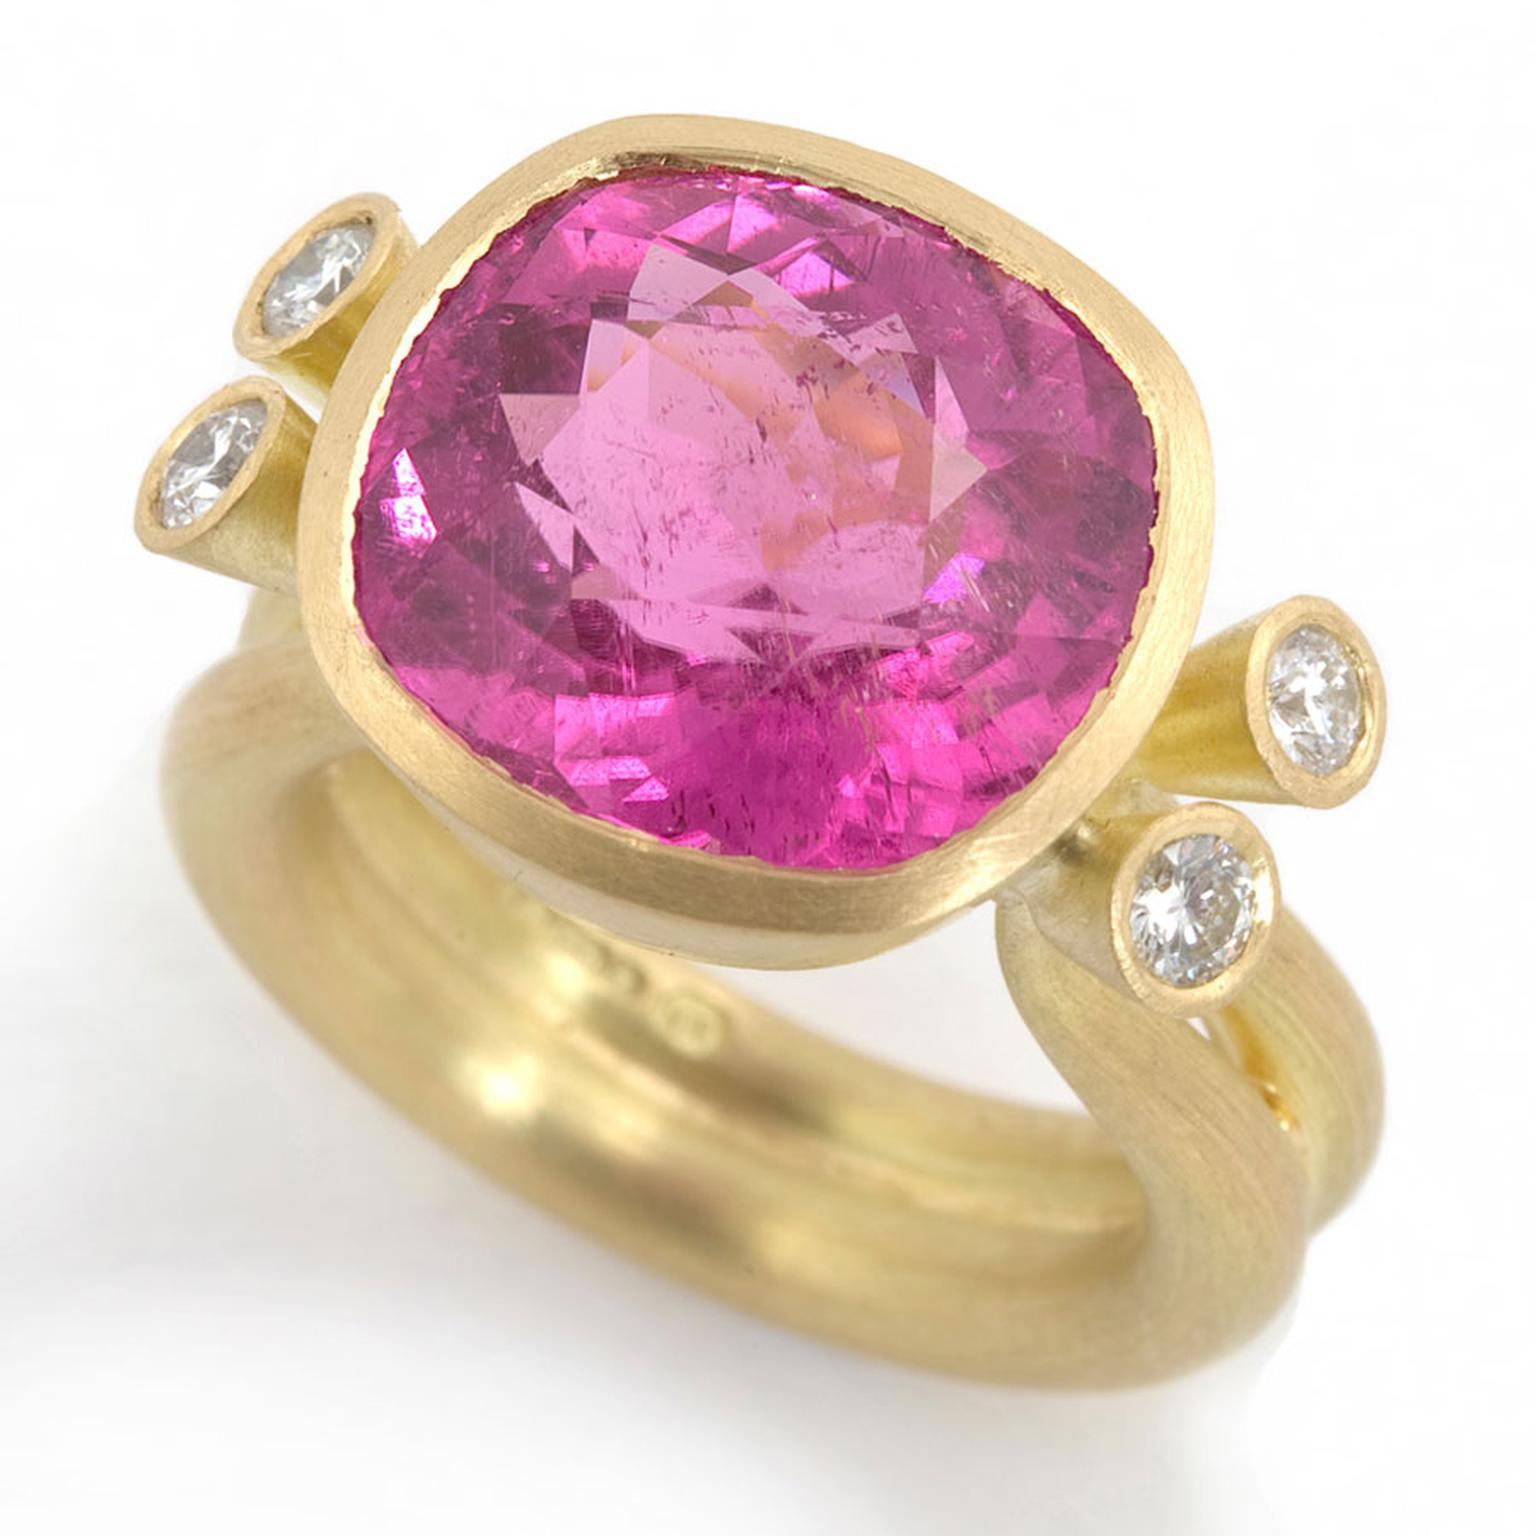 Kath Libbert. Mark-Nuell_Ring-with-pink-tourmaline-and-diamonds